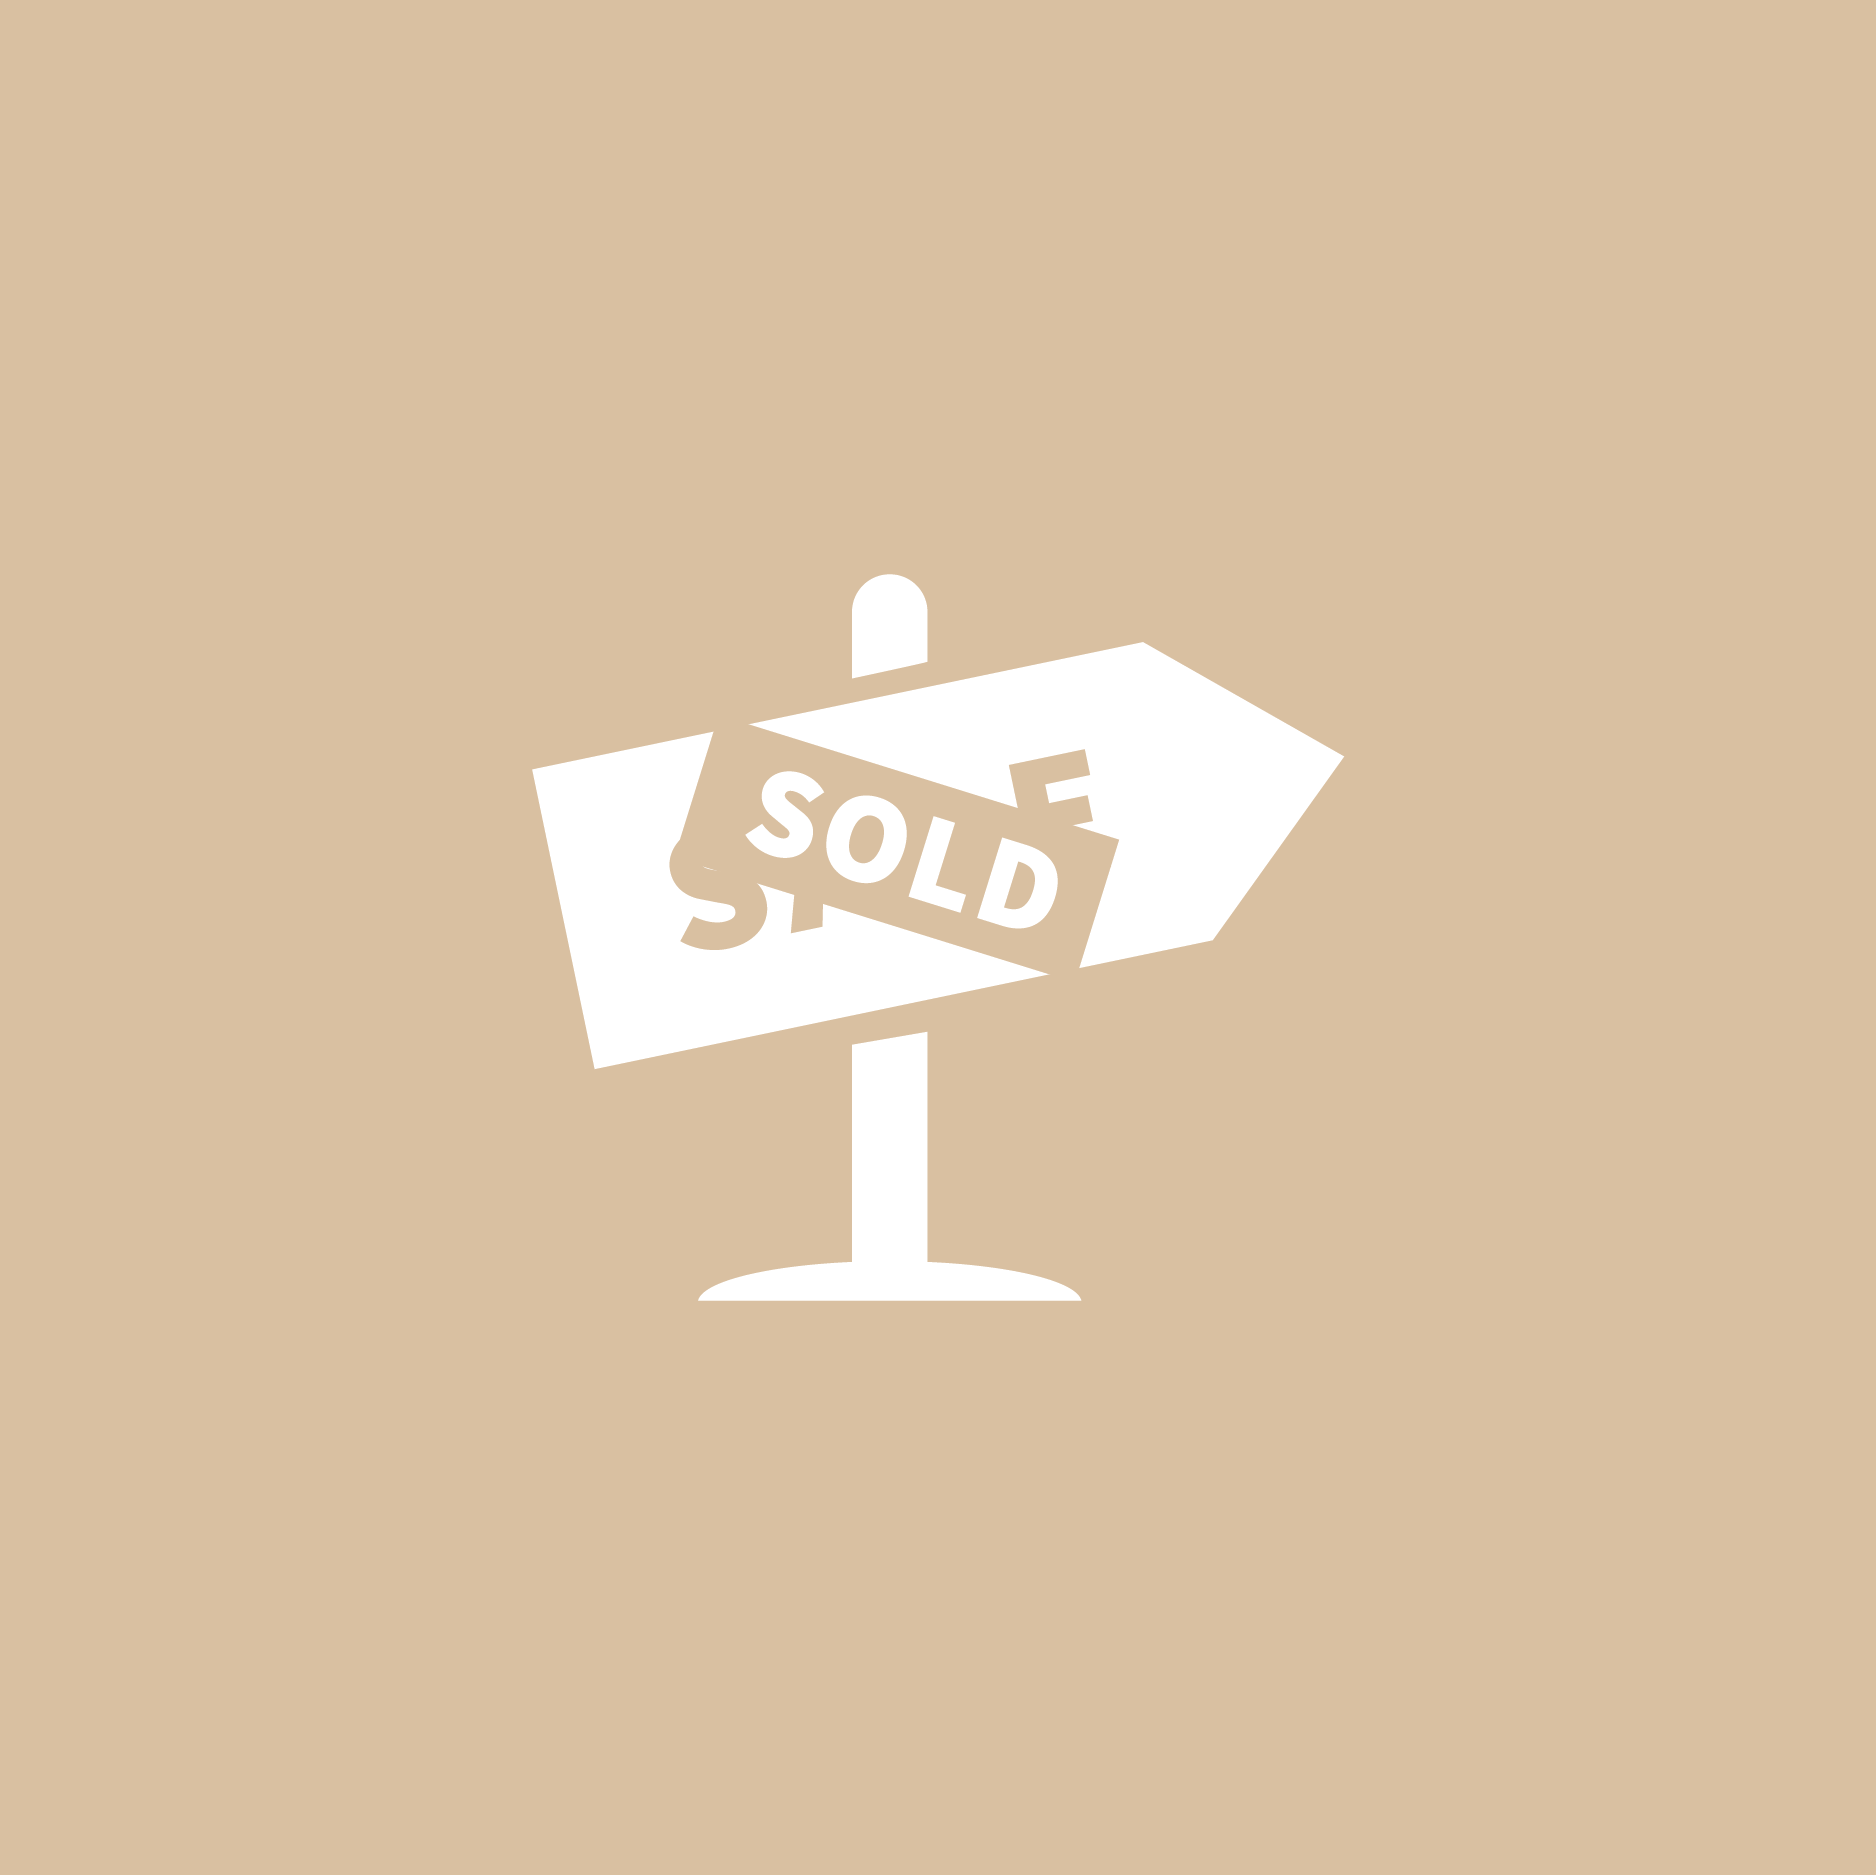 Sell - No matter your circumstances, The Noll Team can get the most money possible in the least amount of time.